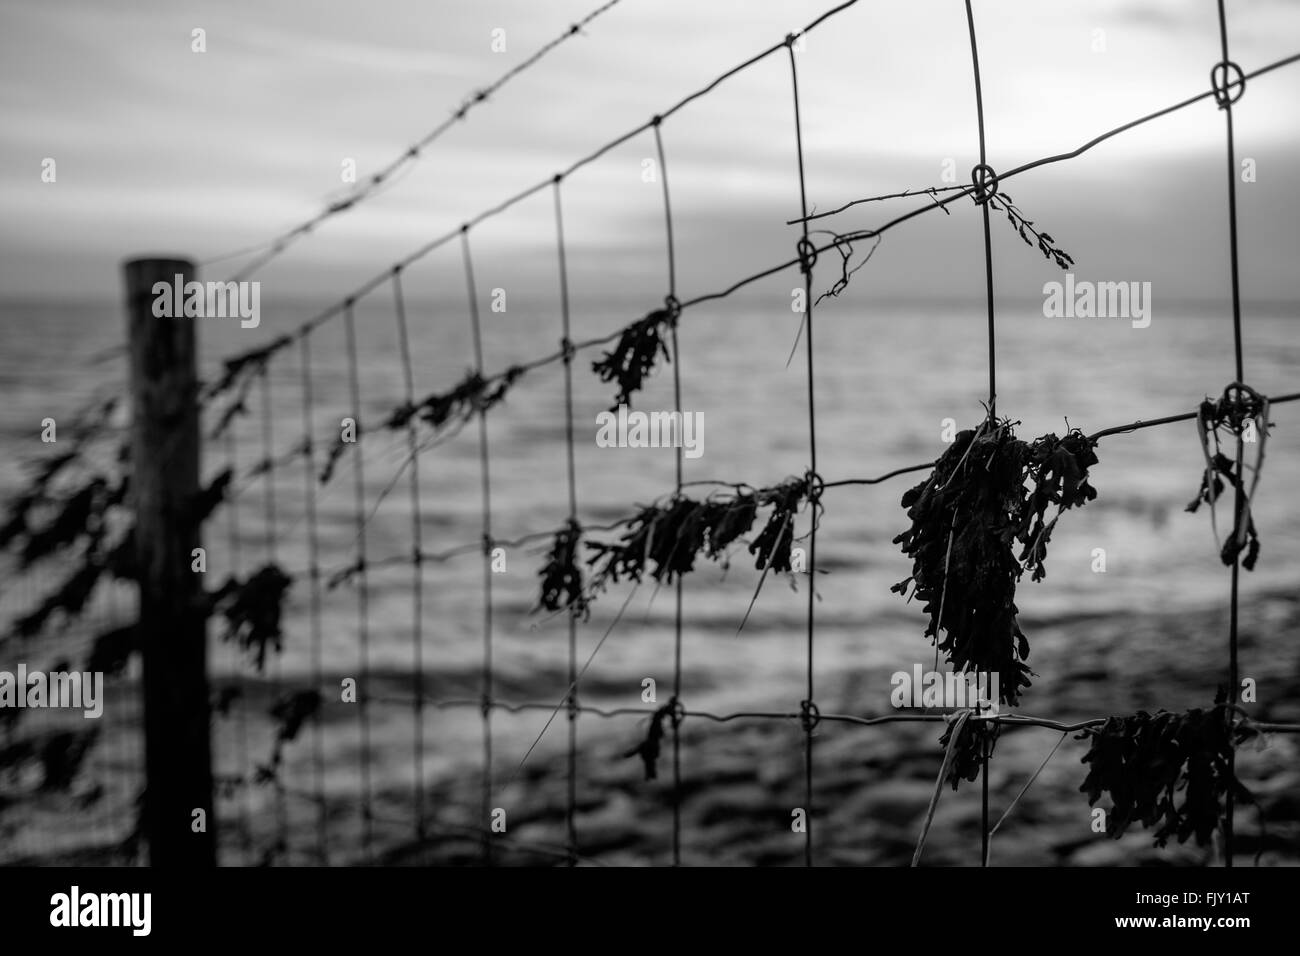 Dirty Railing Against Sea At Dusk - Stock Image